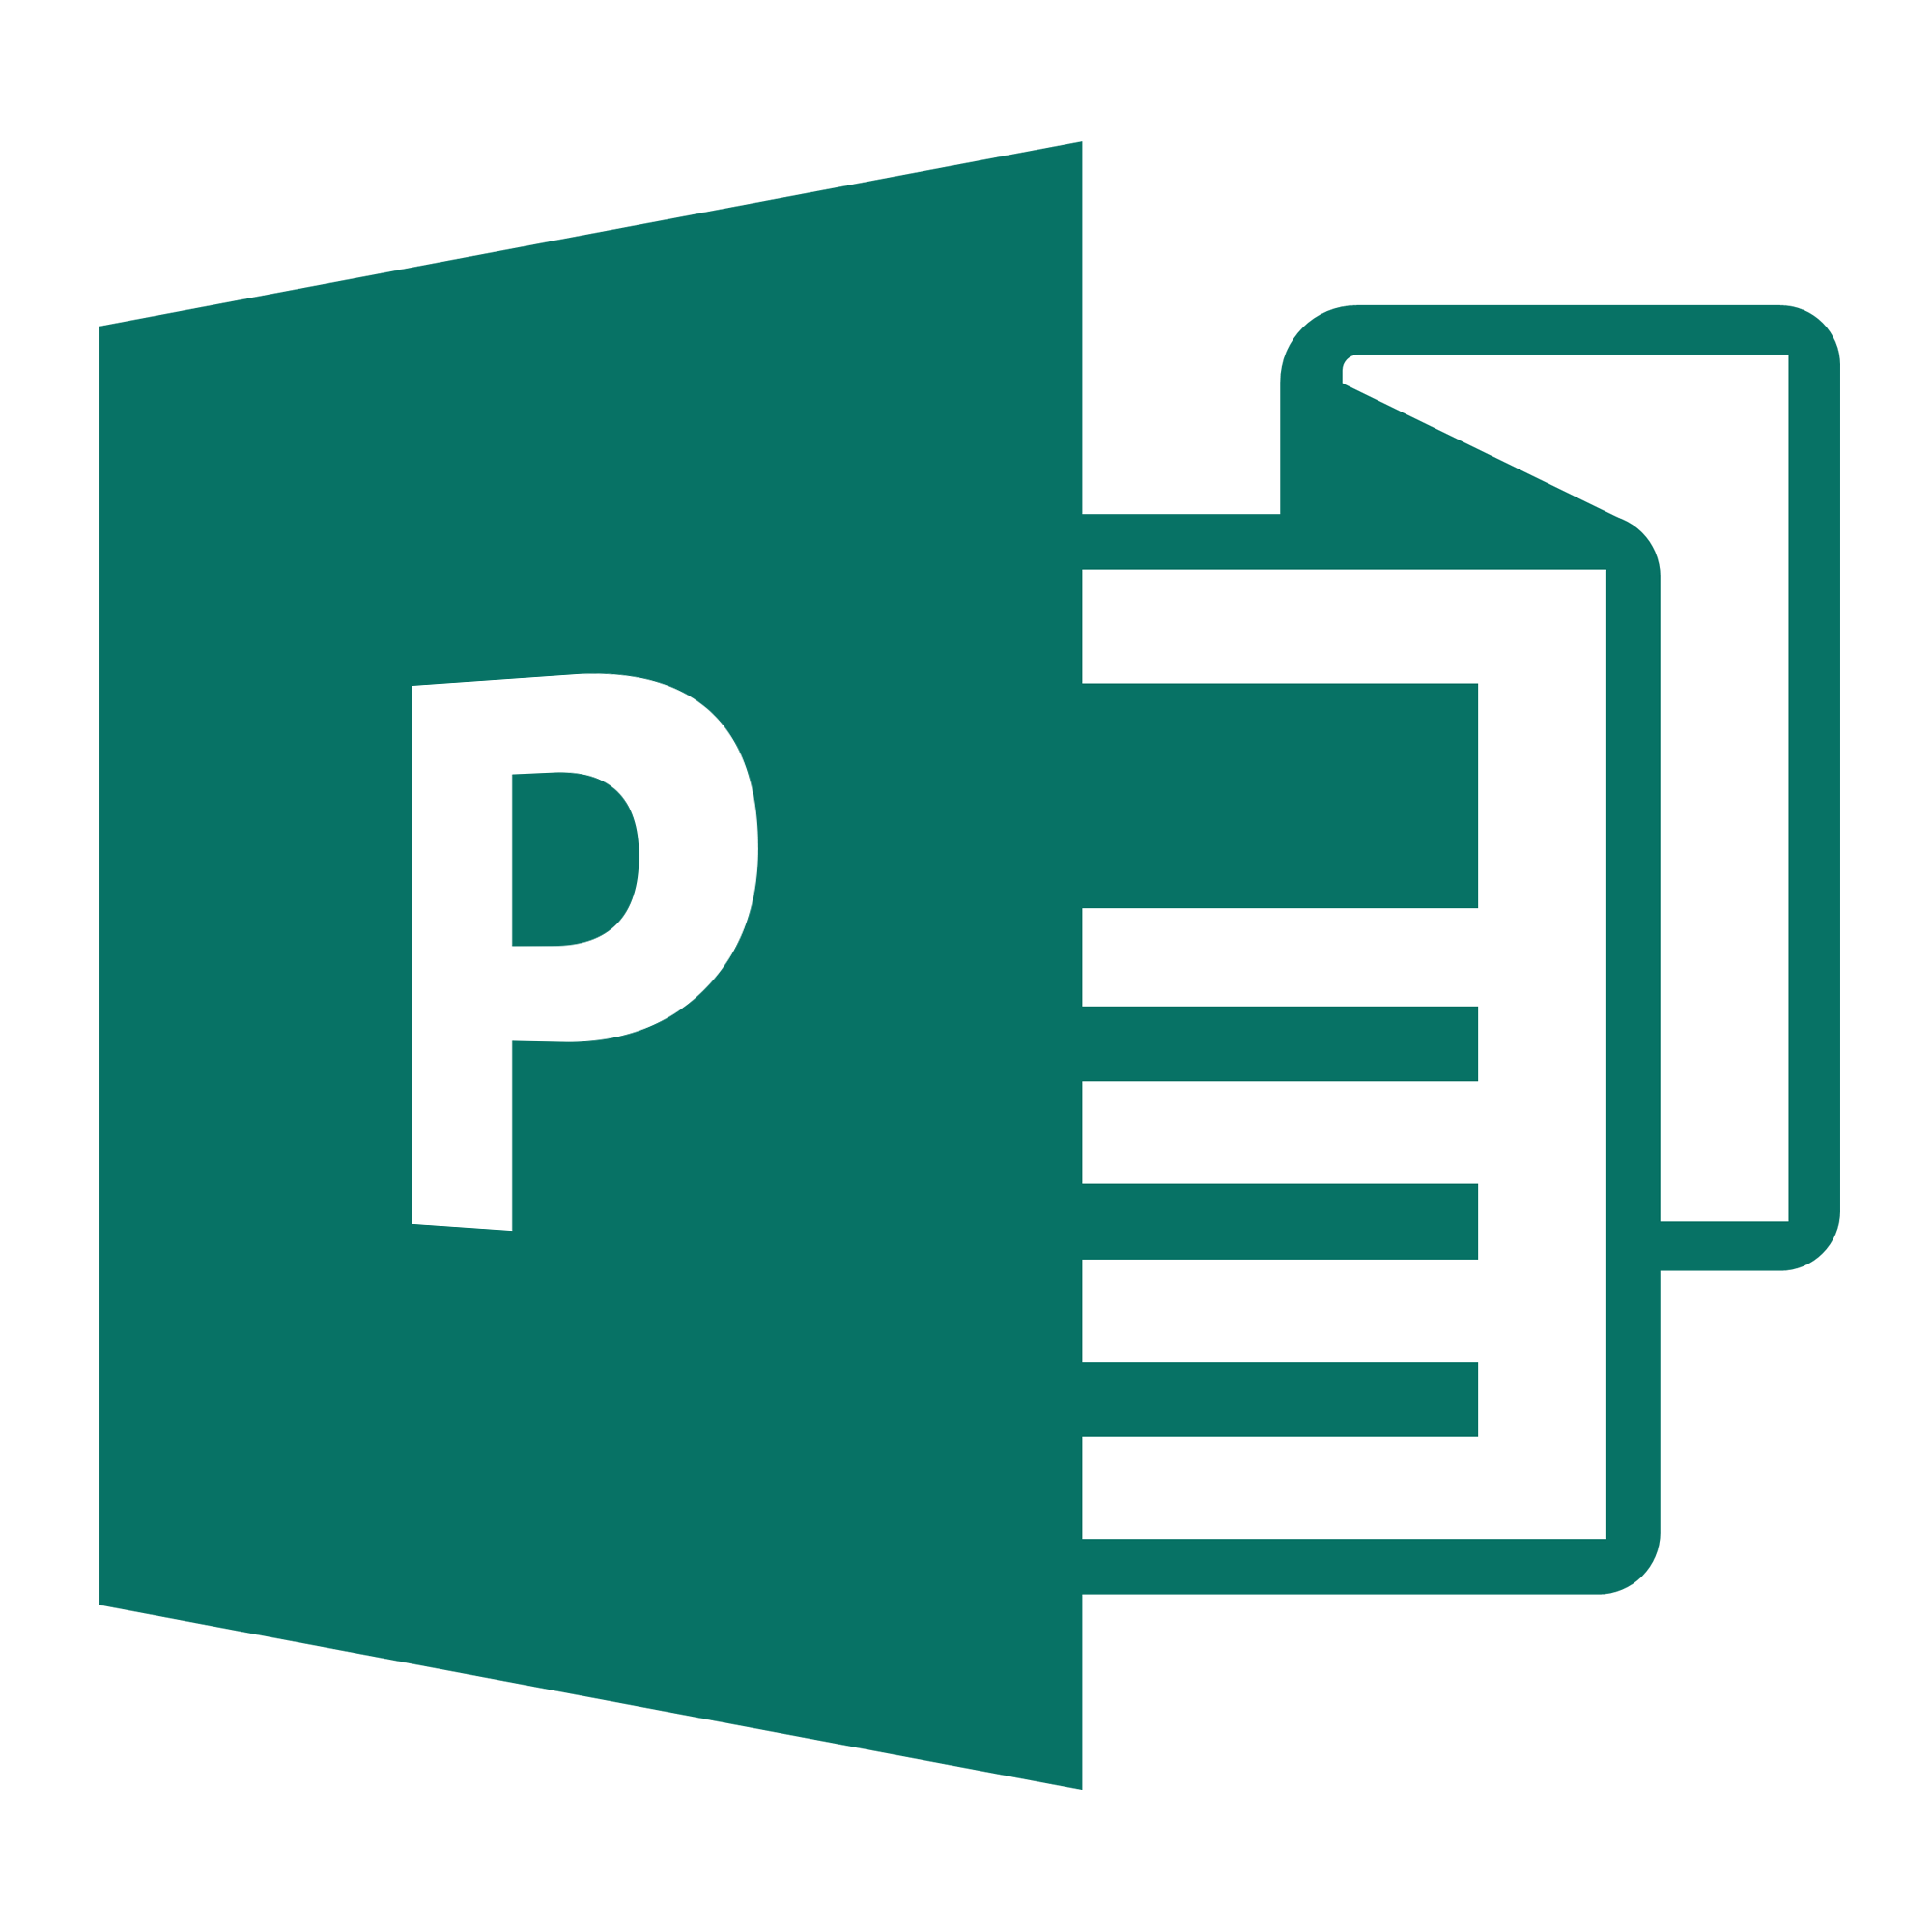 14 Microsoft Office Publisher 2013 Icon Images